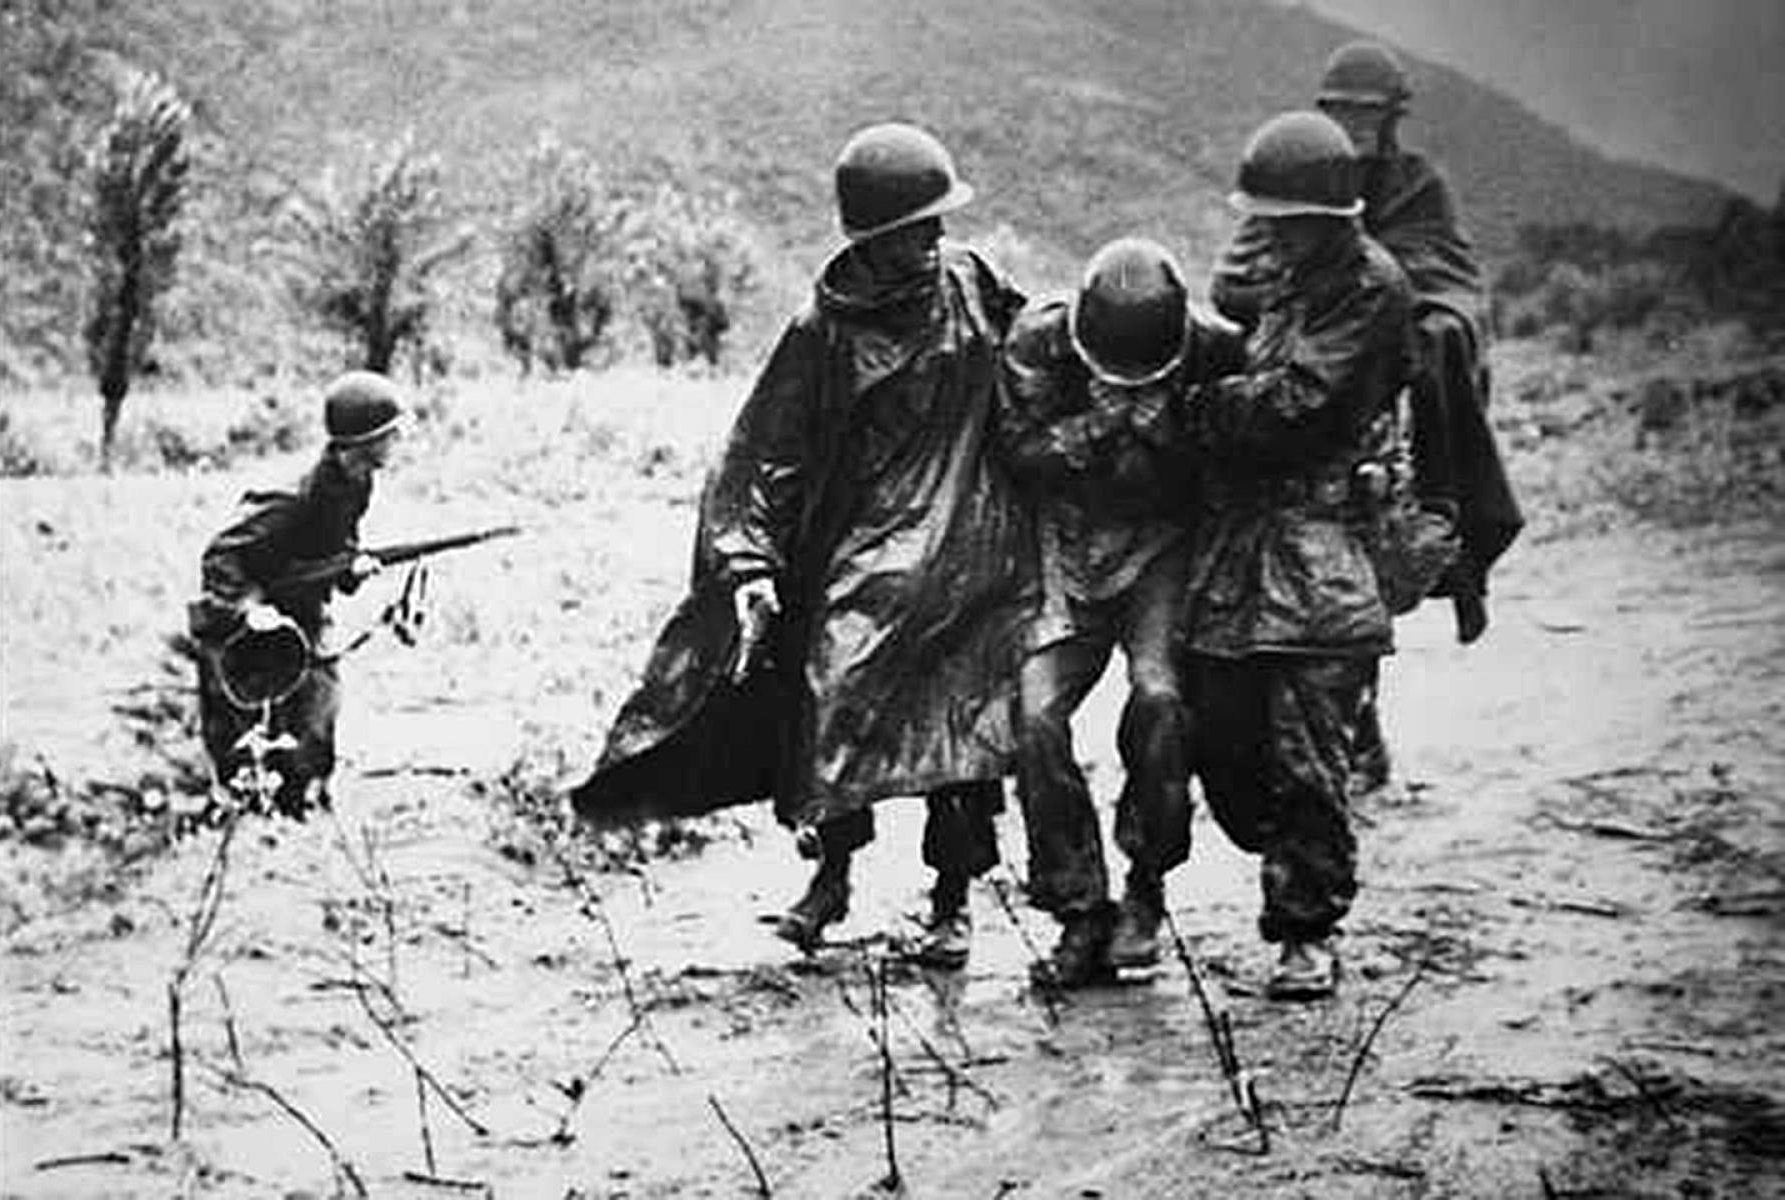 Memo to America-hating Left: What did U.S. gain from sacrificing 37,000 soldiers in the Korean War?